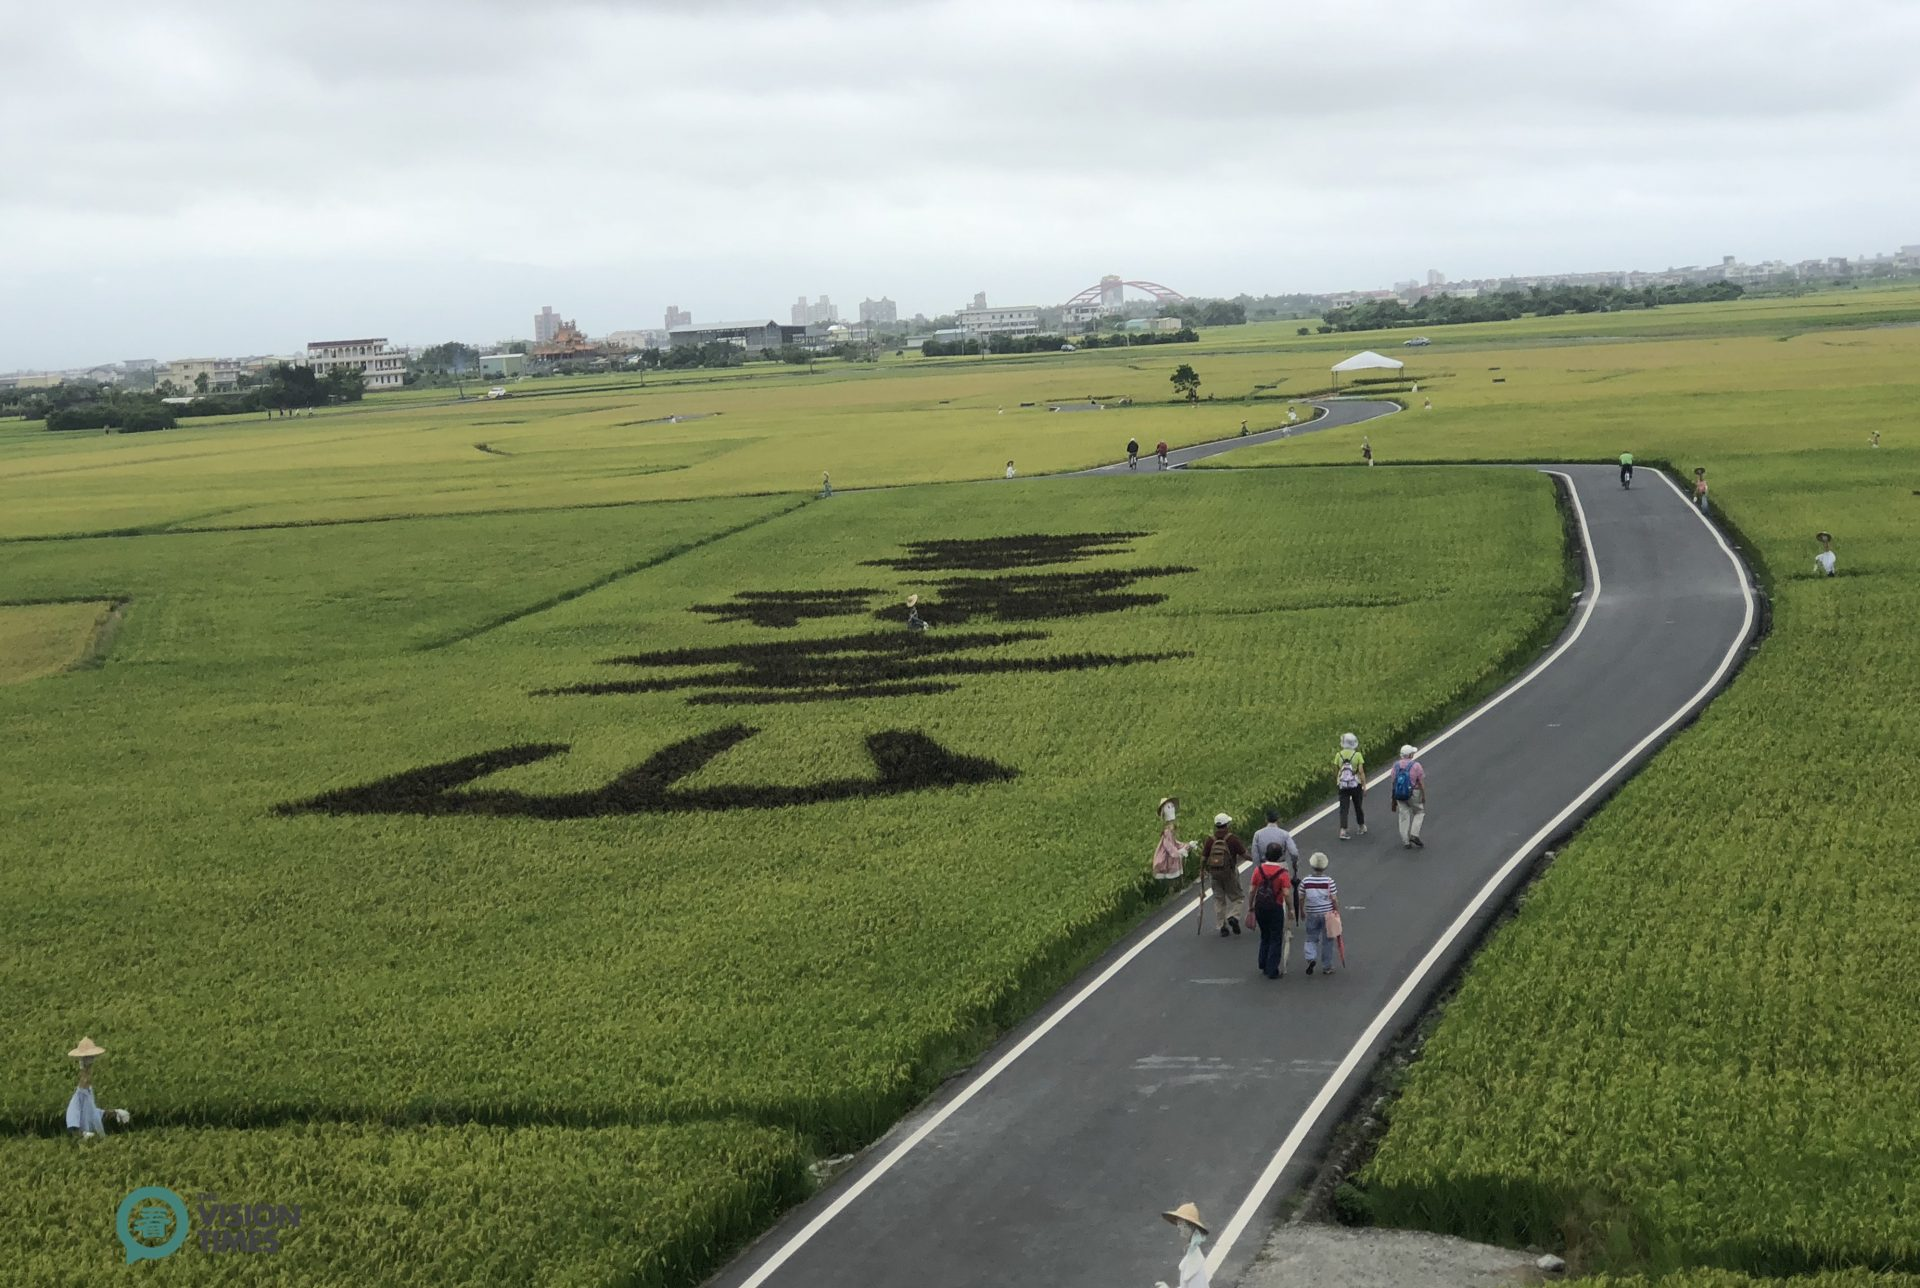 The Chinese characters of 良食大道 and幸福冬山were painted in the rice paddies along the two sides of Mr. Brown Avenue, (Image: Billy Shyu / Vision Times)